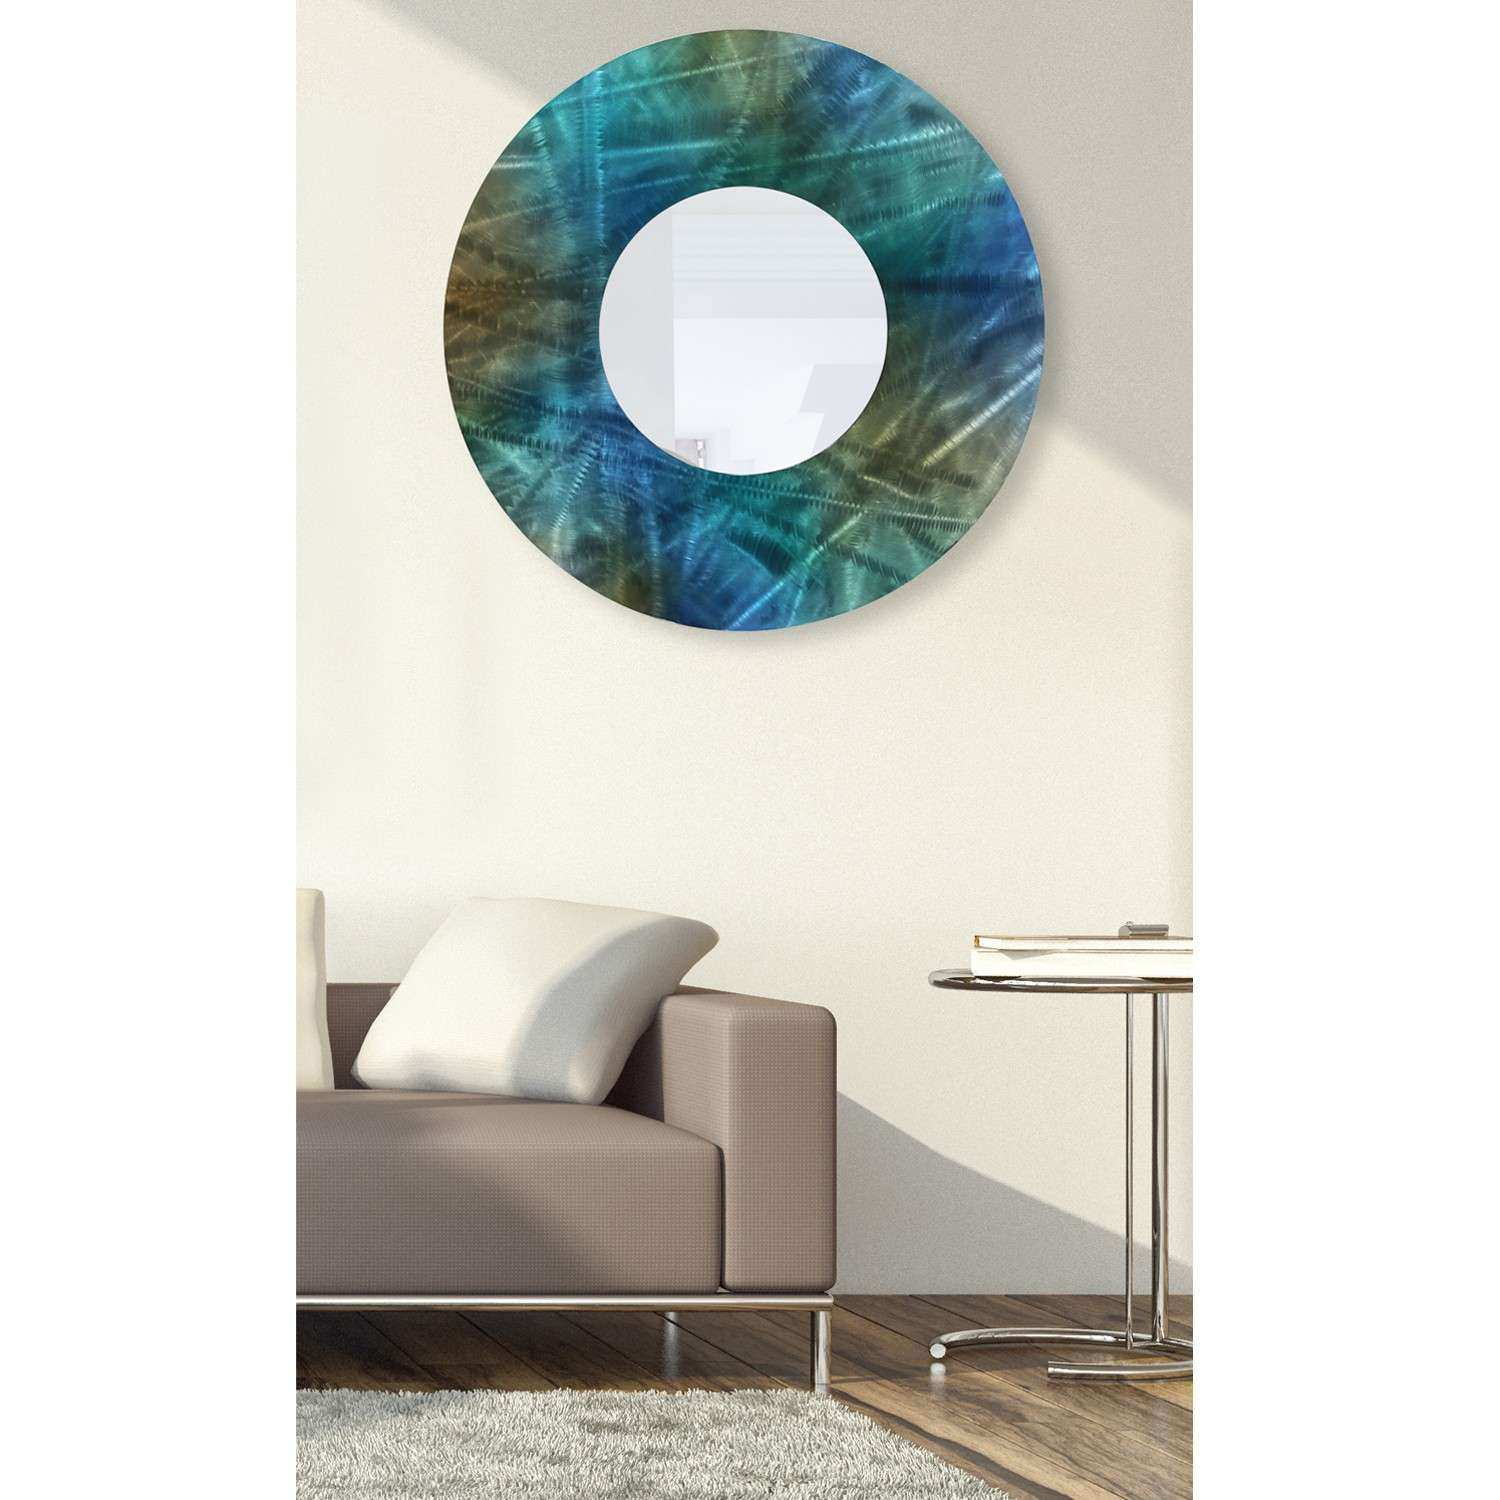 Mirror 103 Round Blue Teal and Brown Abstract Metal